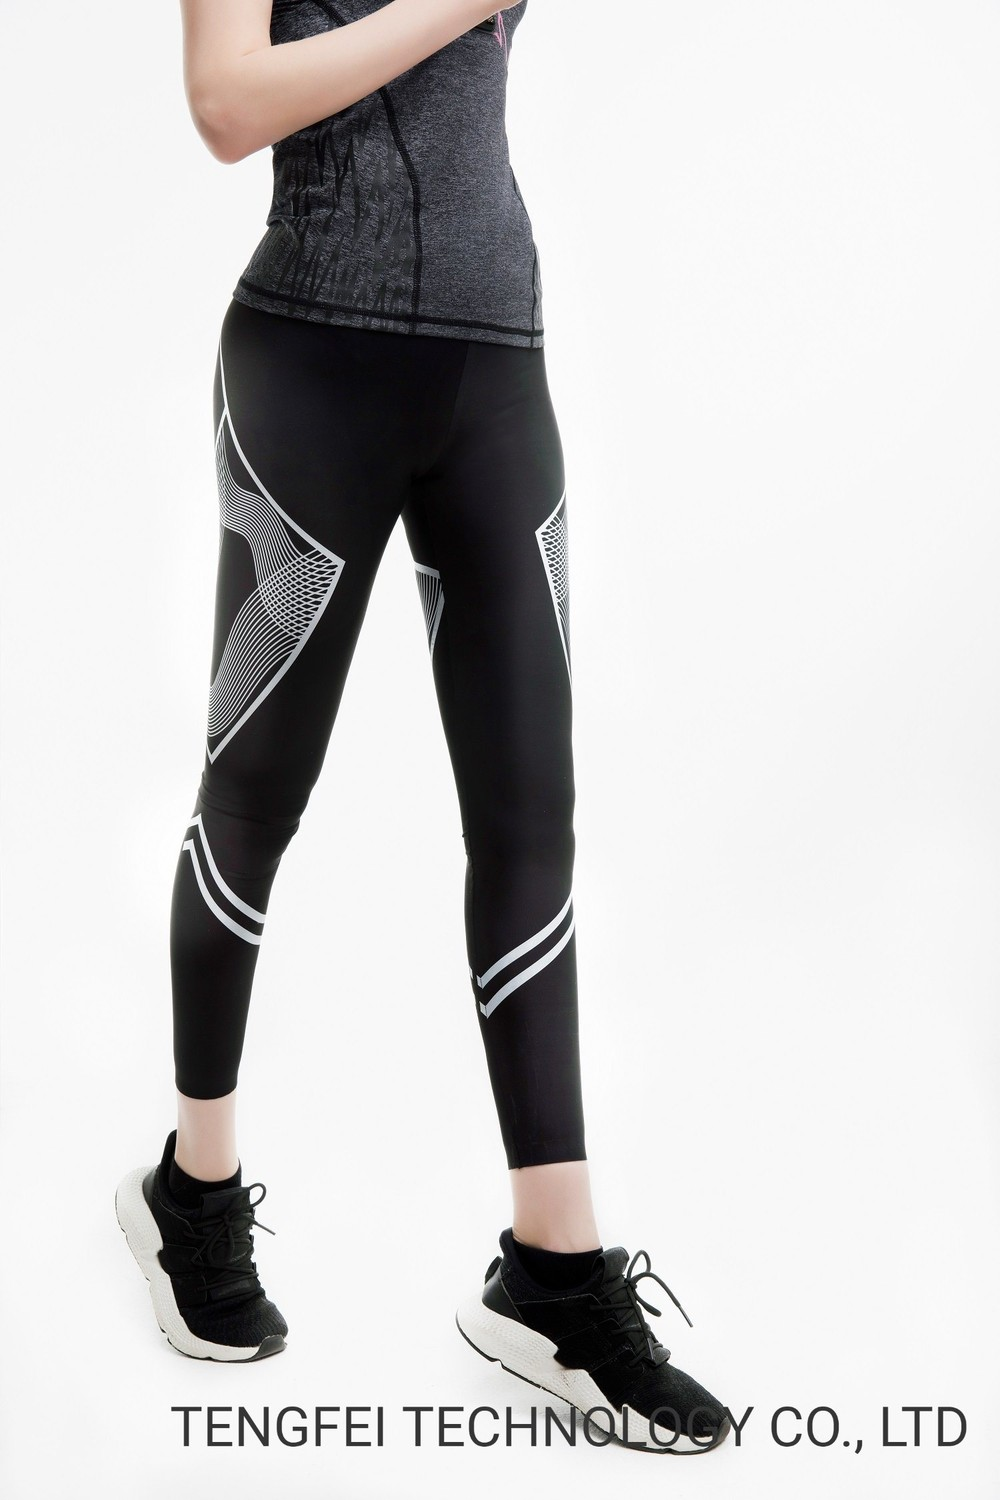 Limax Slimming Sports Yoga Leisure and Compressive Legging